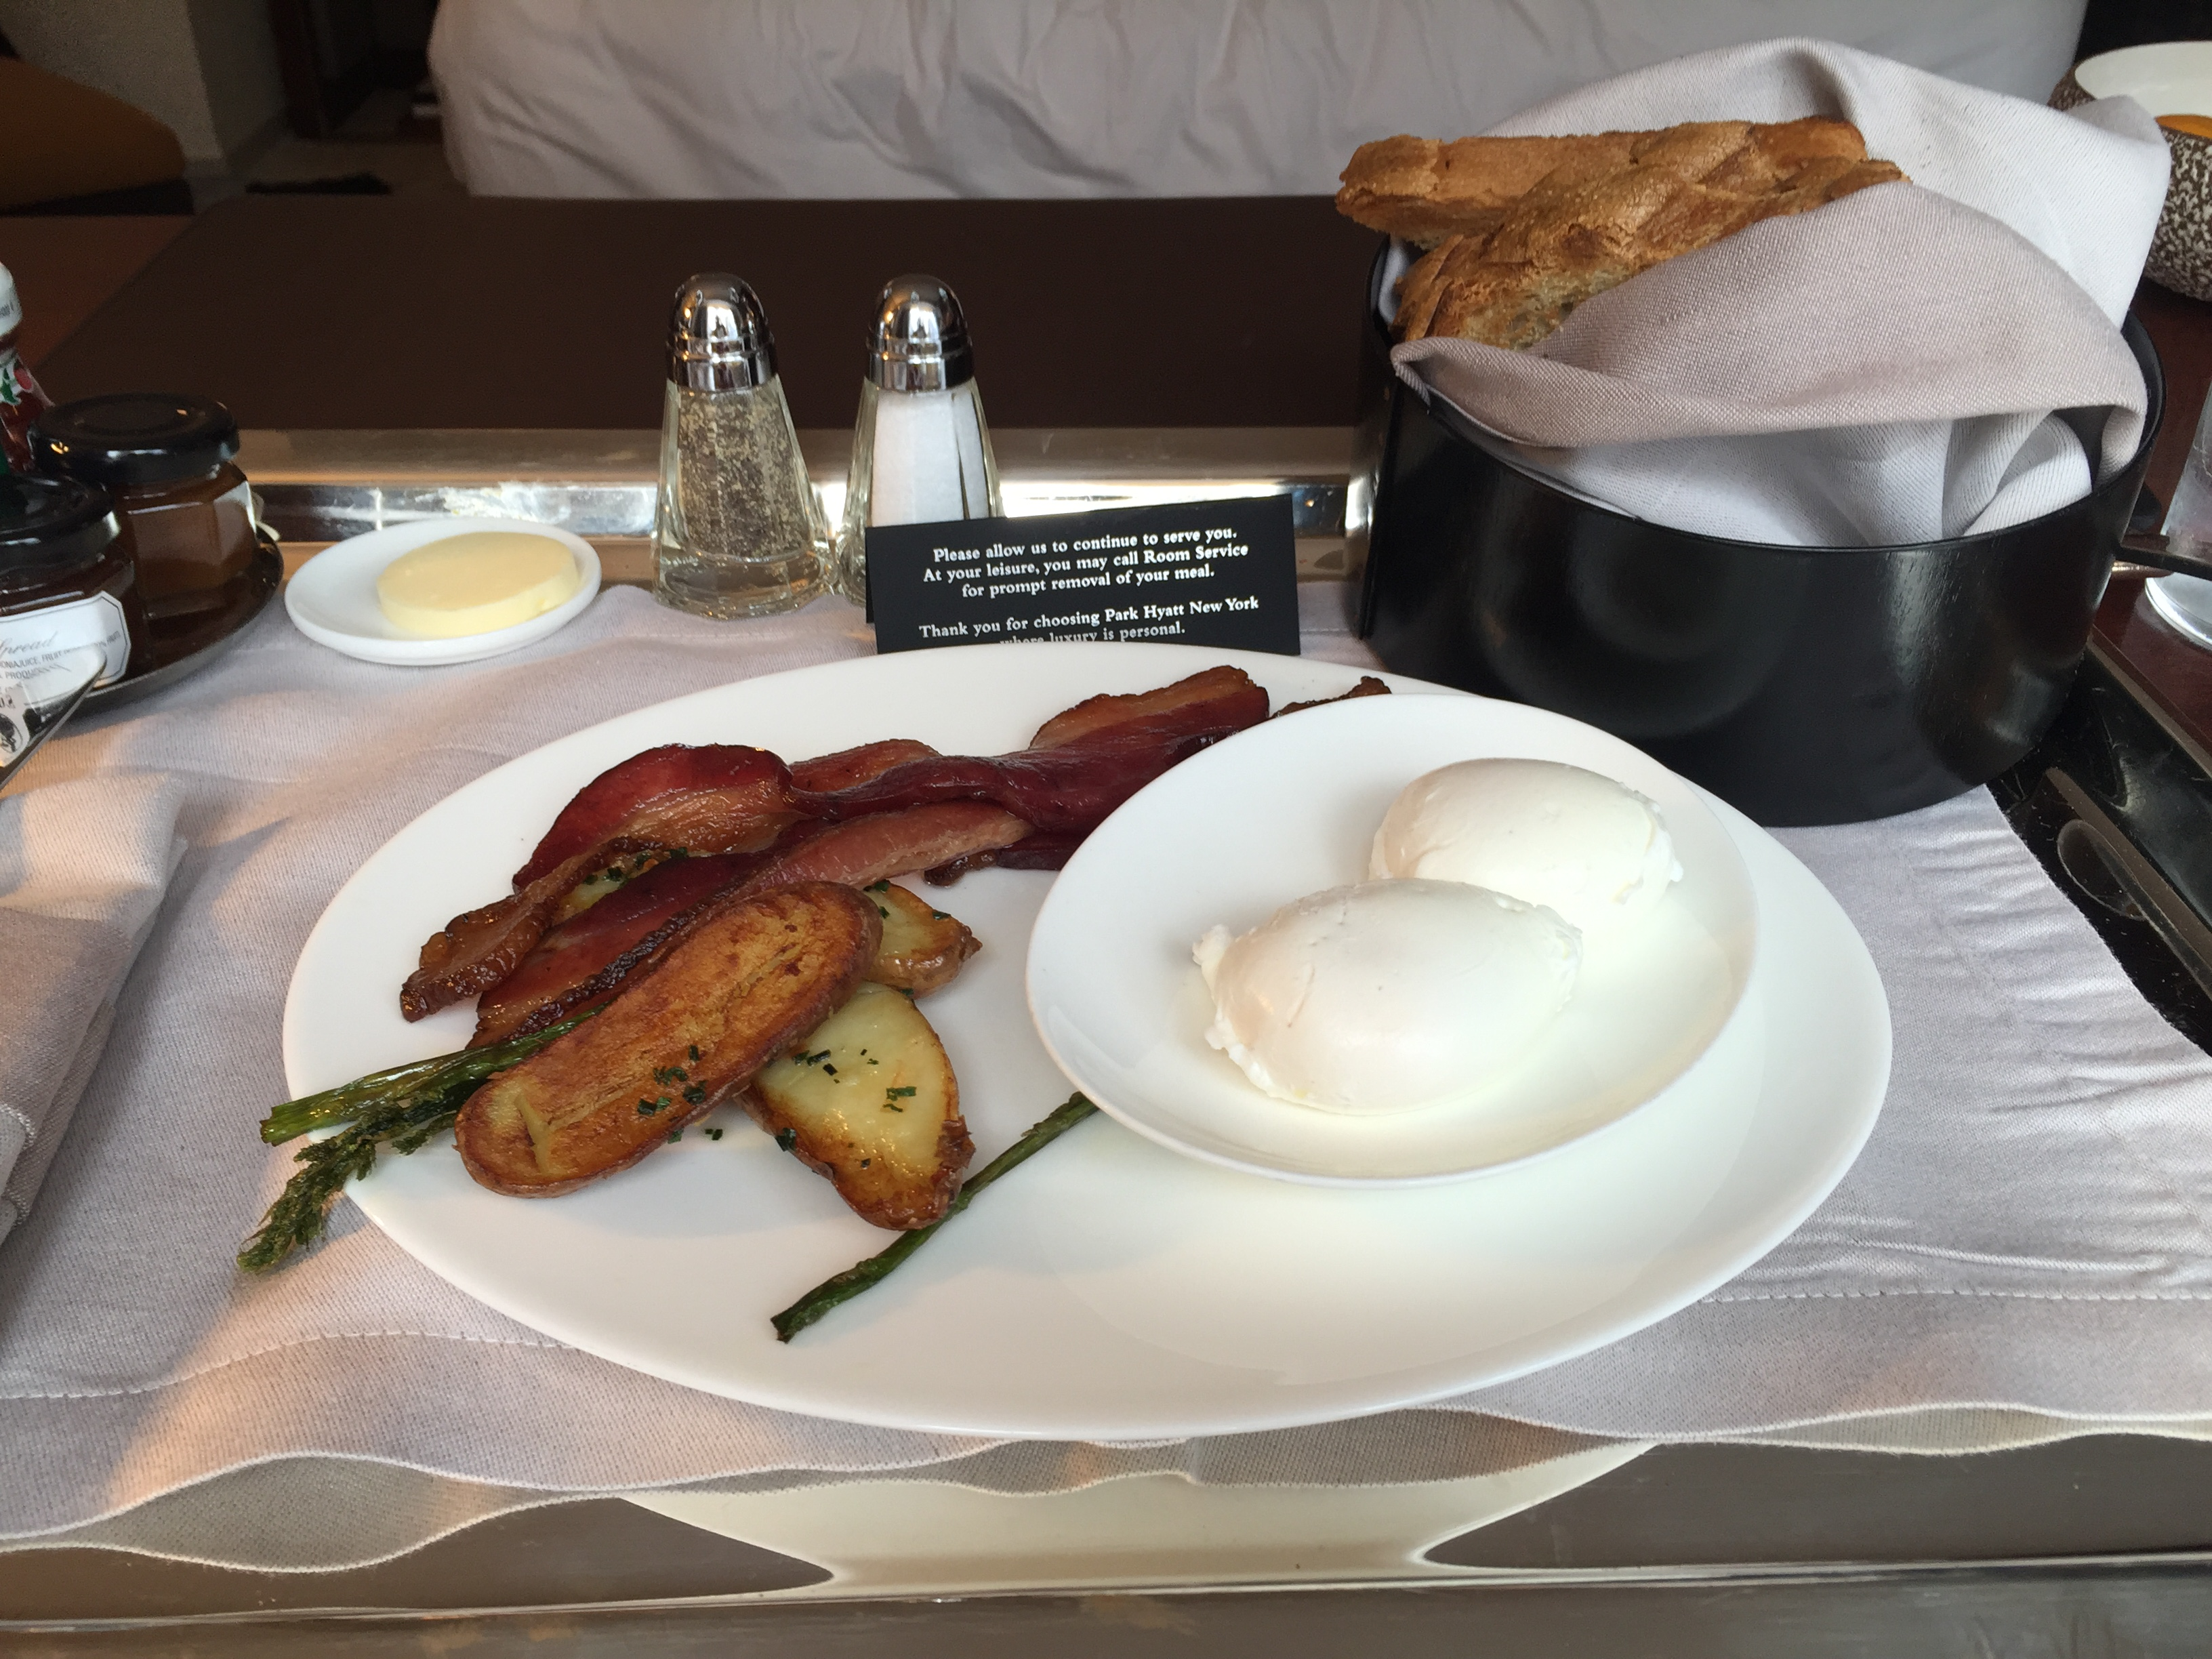 Park Hyatt New York Breakfast